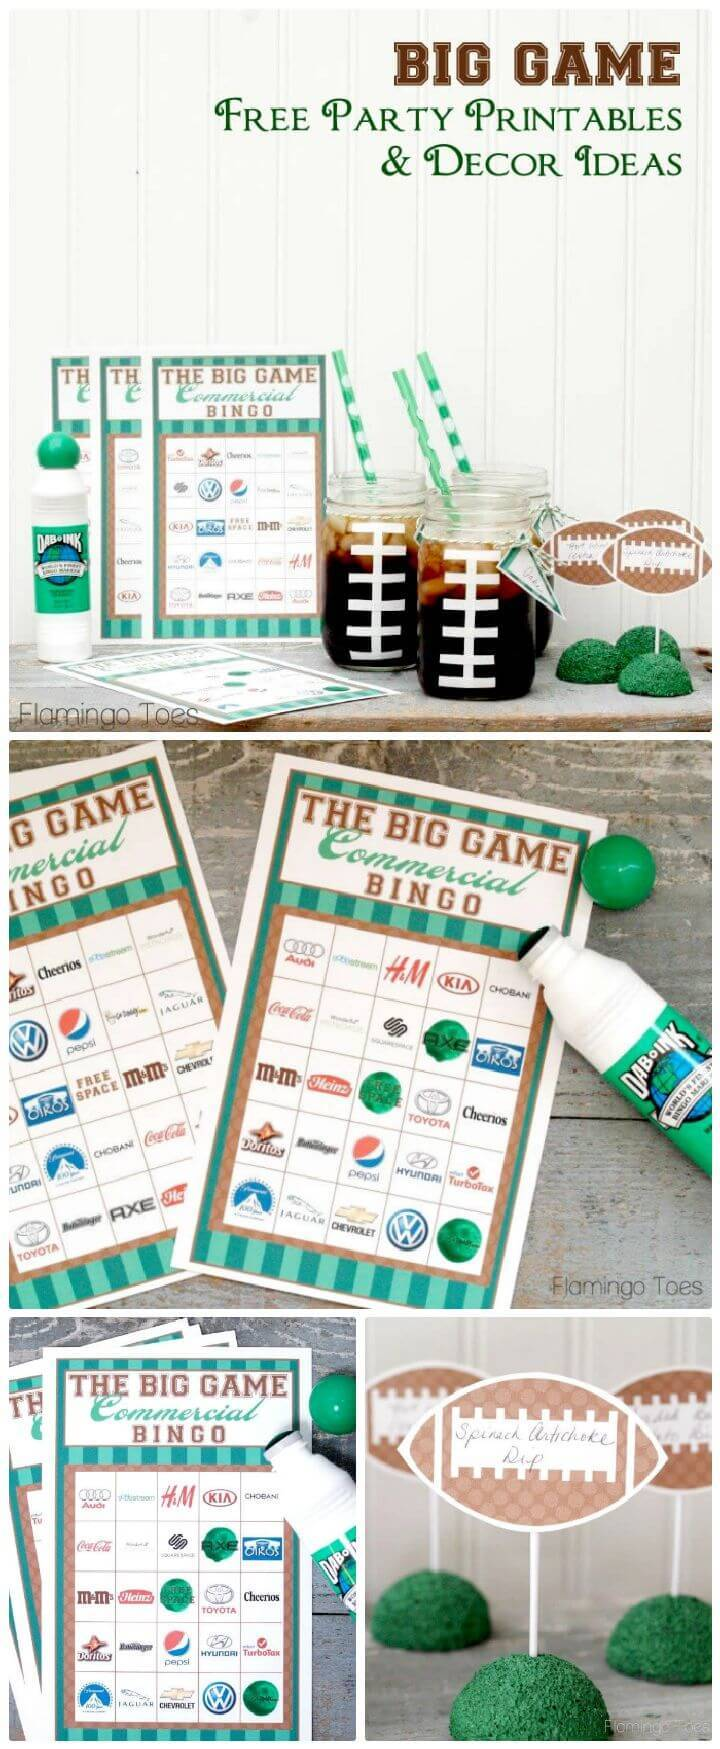 DIY Big Game Party Ideas By Using Mason Jar